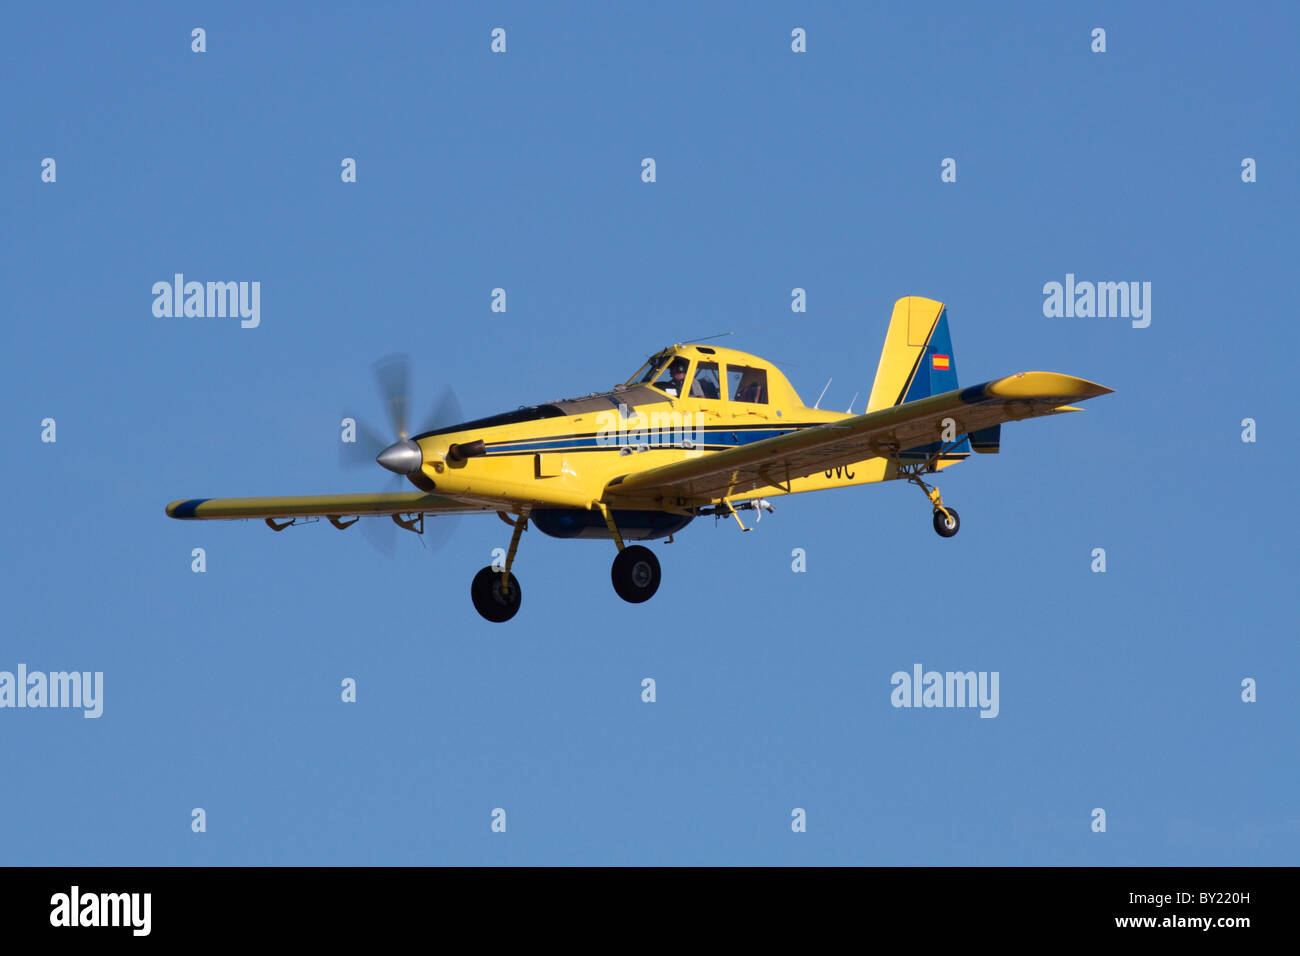 Air Tractor AT-802 firefighting and crop-dusting aircraft - Stock Image